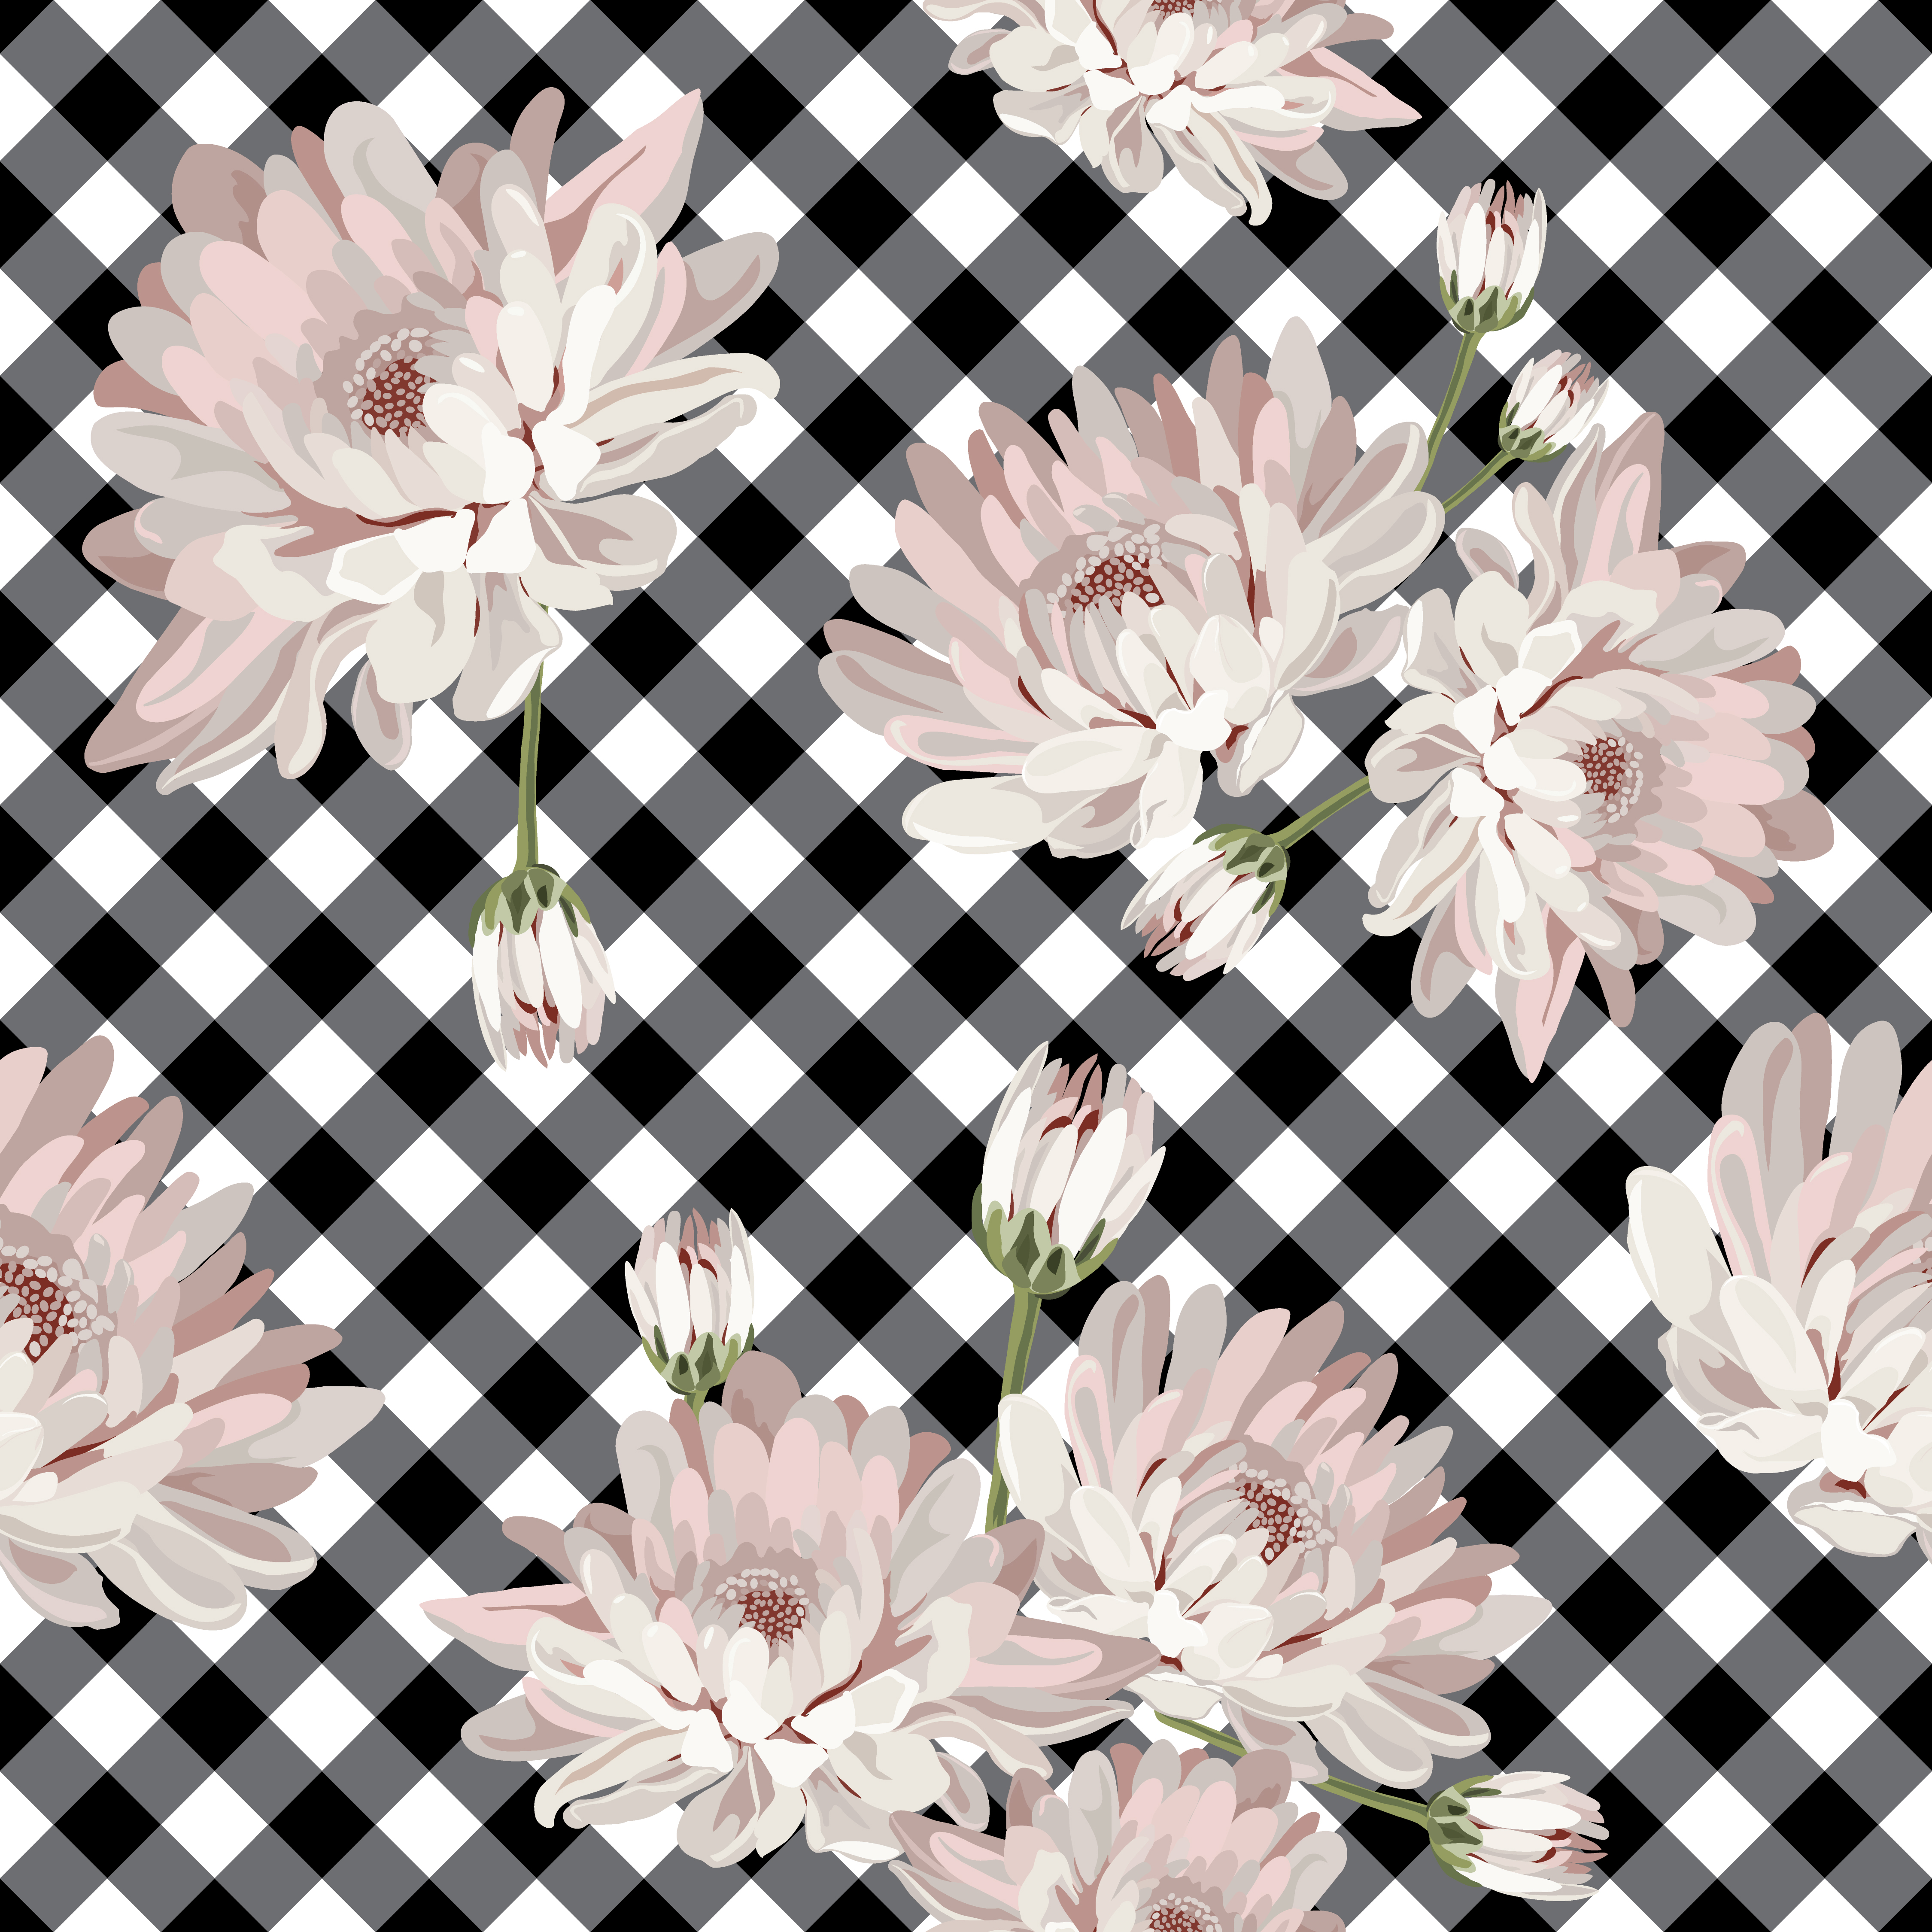 Floral Pattern With Chrysanthemums On Gingham, Checked